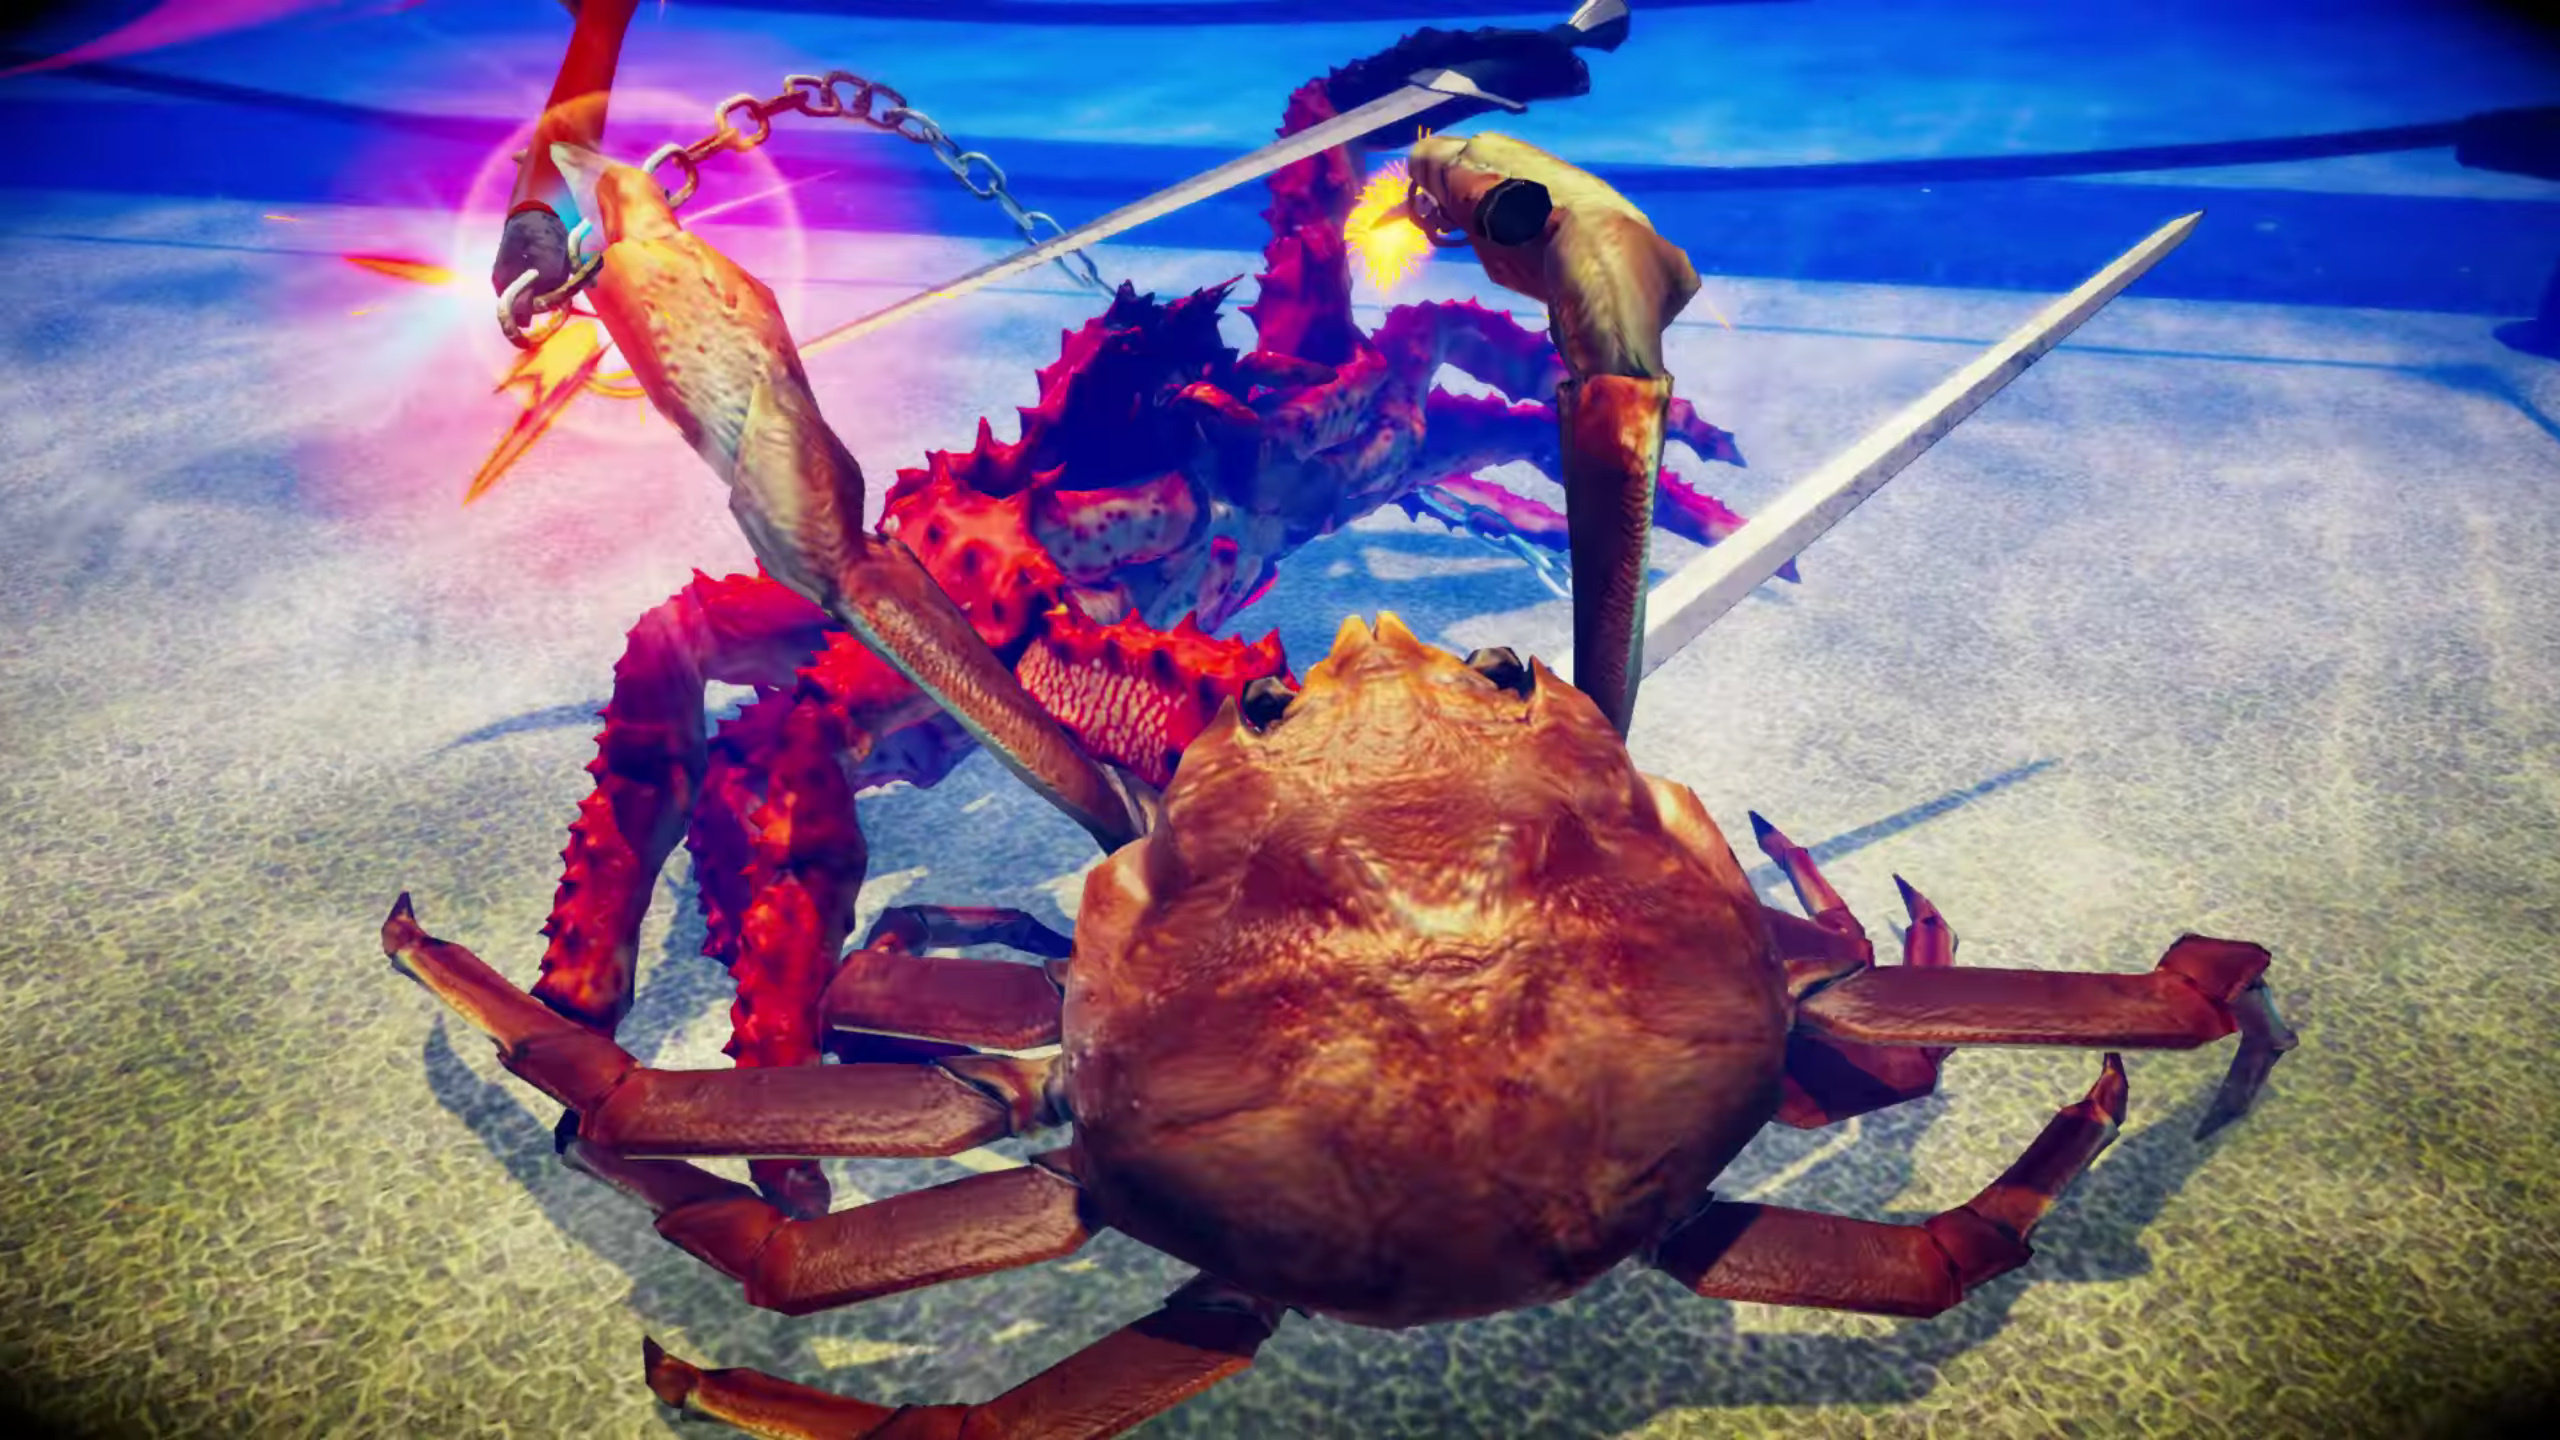 You could run Doom on 16 billion crabs